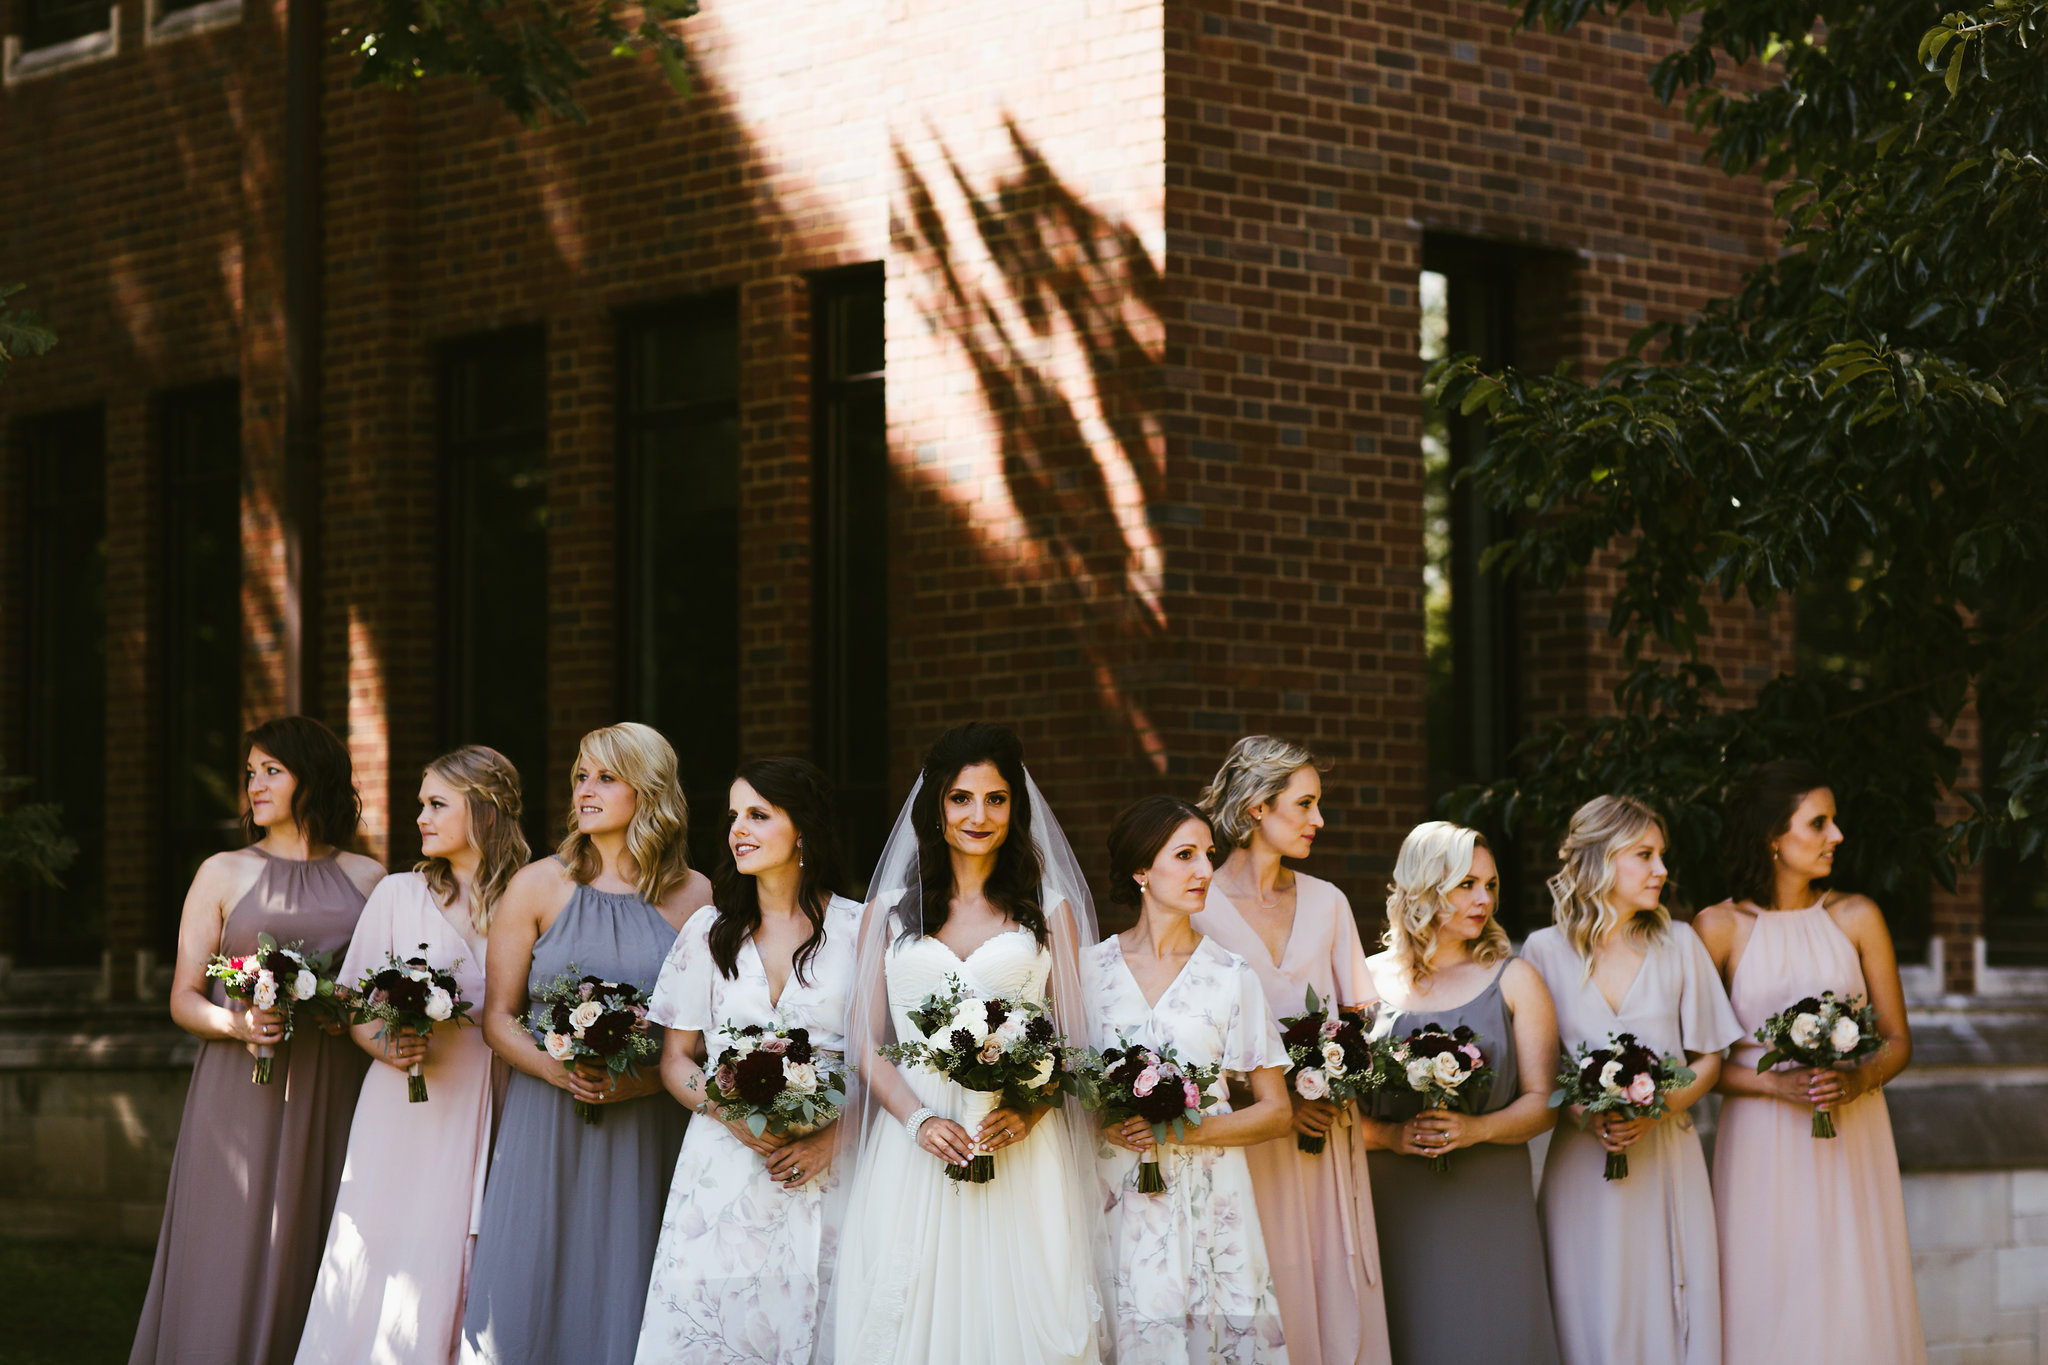 saralane-and-stevie-wedding-emily-jonathan-nashville-tn-LRE-152